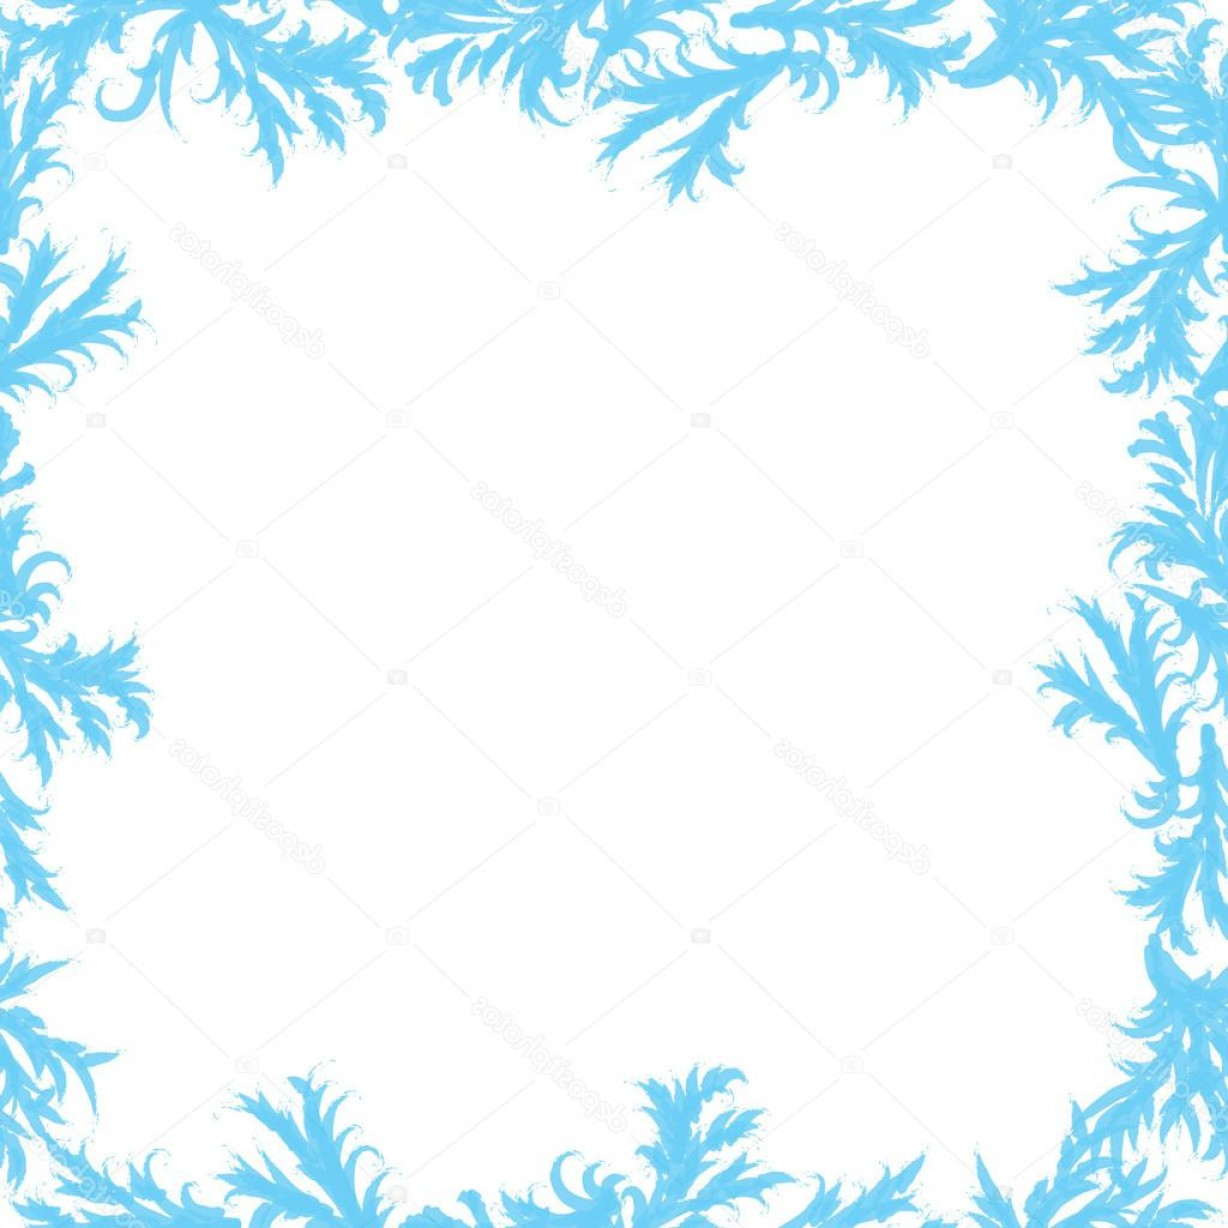 Frost Border Vector: Stock Illustration Frame Of Frost Patterns